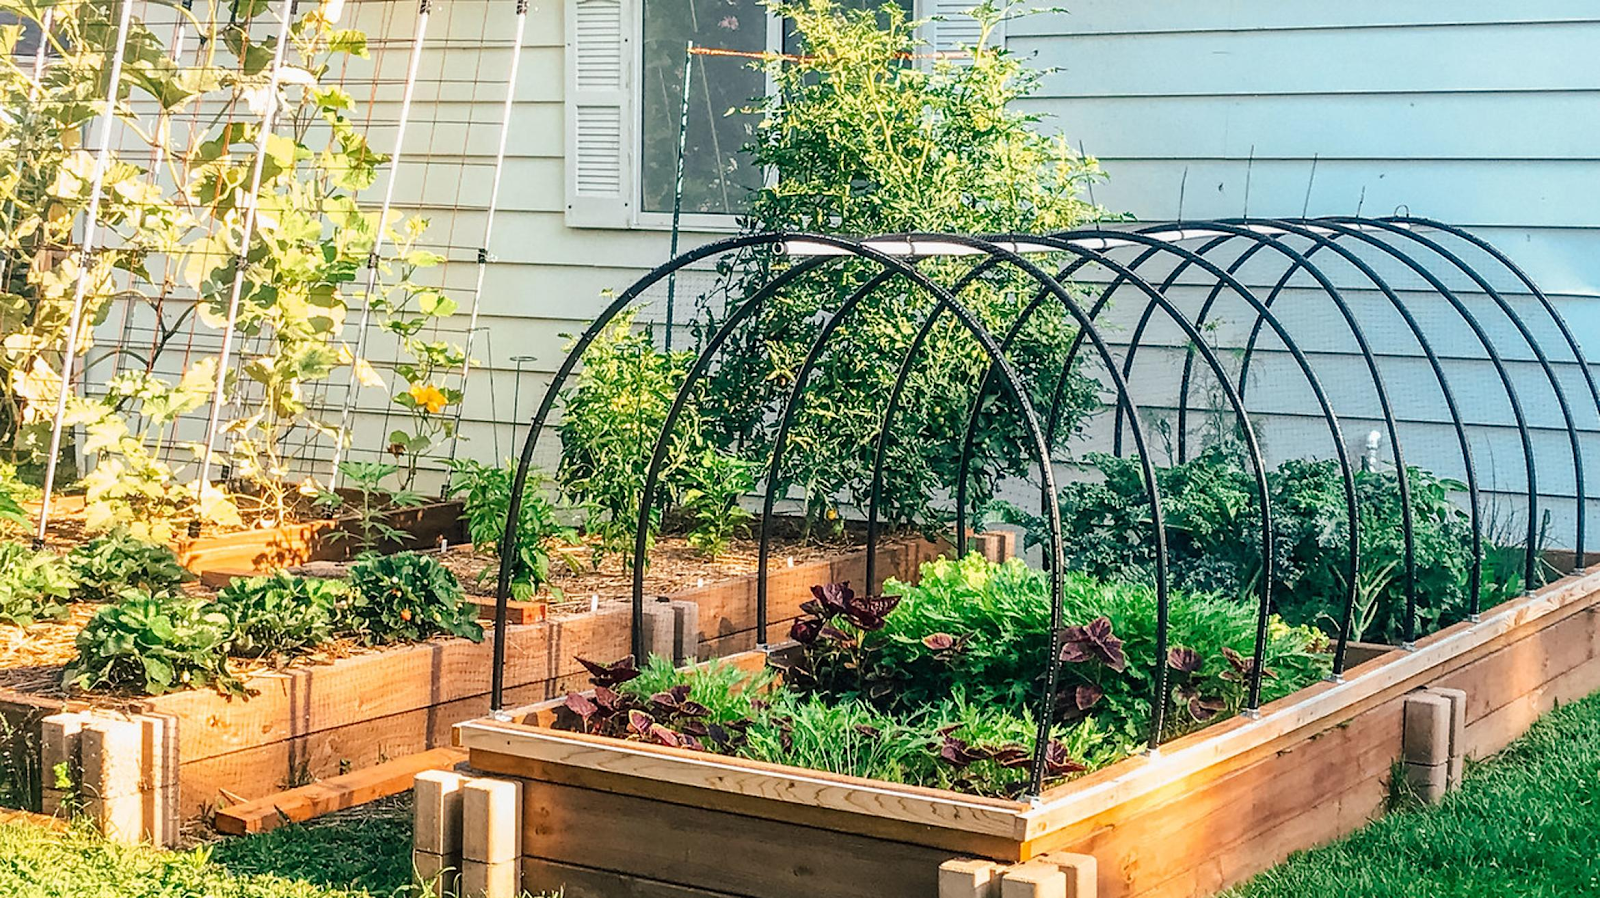 A beautiful outdoor vegetable and herb garden, created with recycled materials in an eco friendly effort.